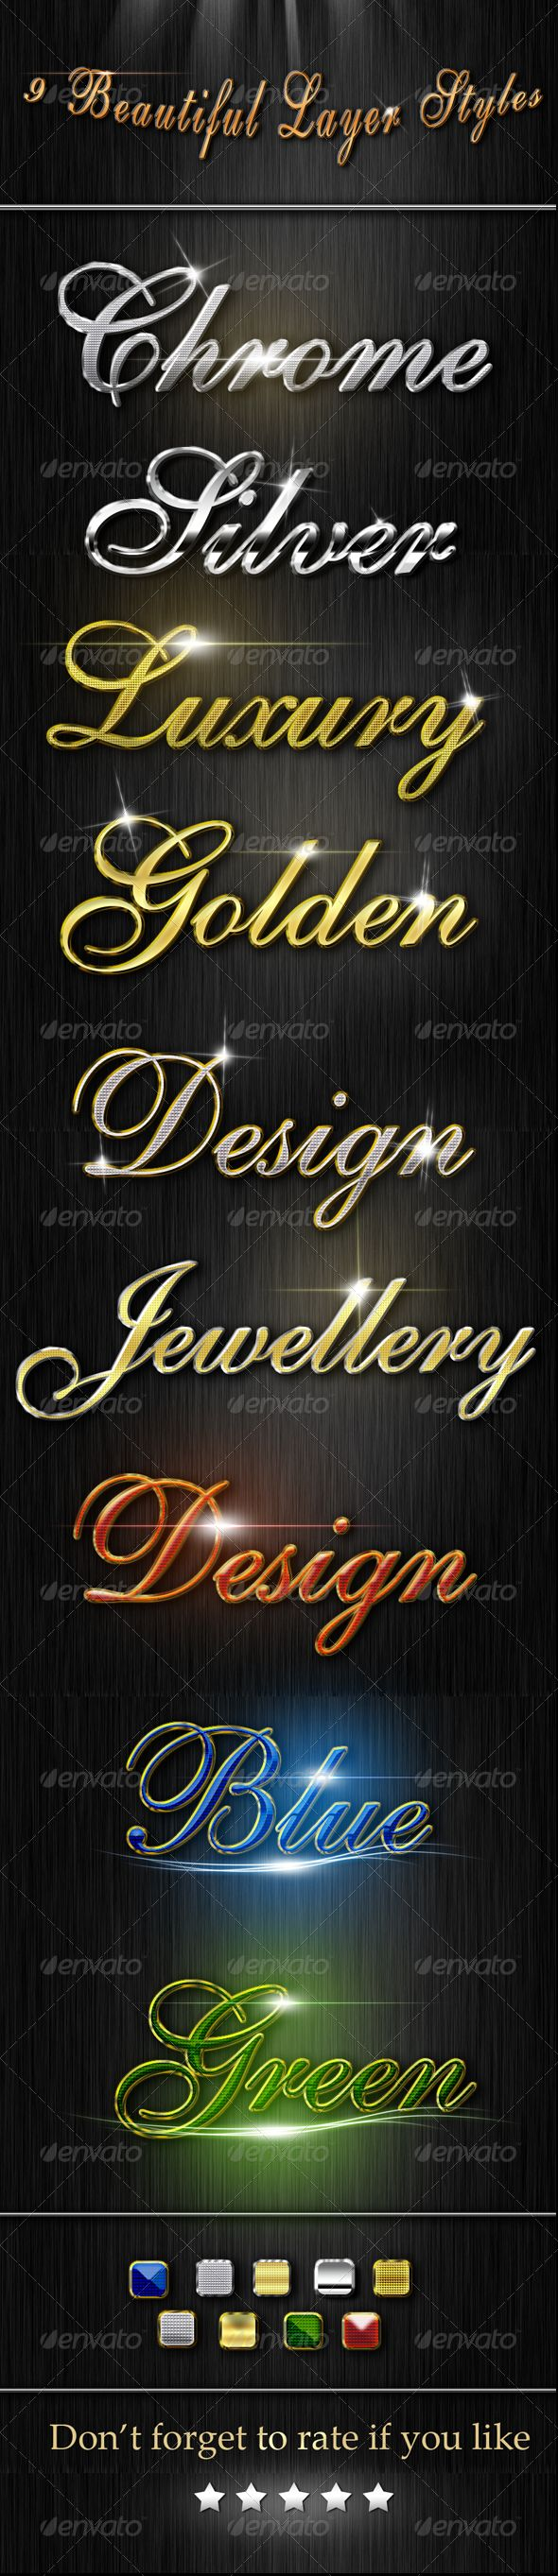 """Beautiful Layer Styles  #GraphicRiver         if you want to add the style pack , open photoshop , go to beautiful style.asl and make double click . -You can apply the same styles to any of your own fonts or objects -download the free used font """"english111 vivace bt"""" :  .fontpalace /font-details/English+111+Vivace+BT/   don't forget to rate it if you like it :    more item ?    text effects              lens flares      Created: 4May13 Add-onFilesIncluded: LayeredPSD #PhotoshopASL…"""